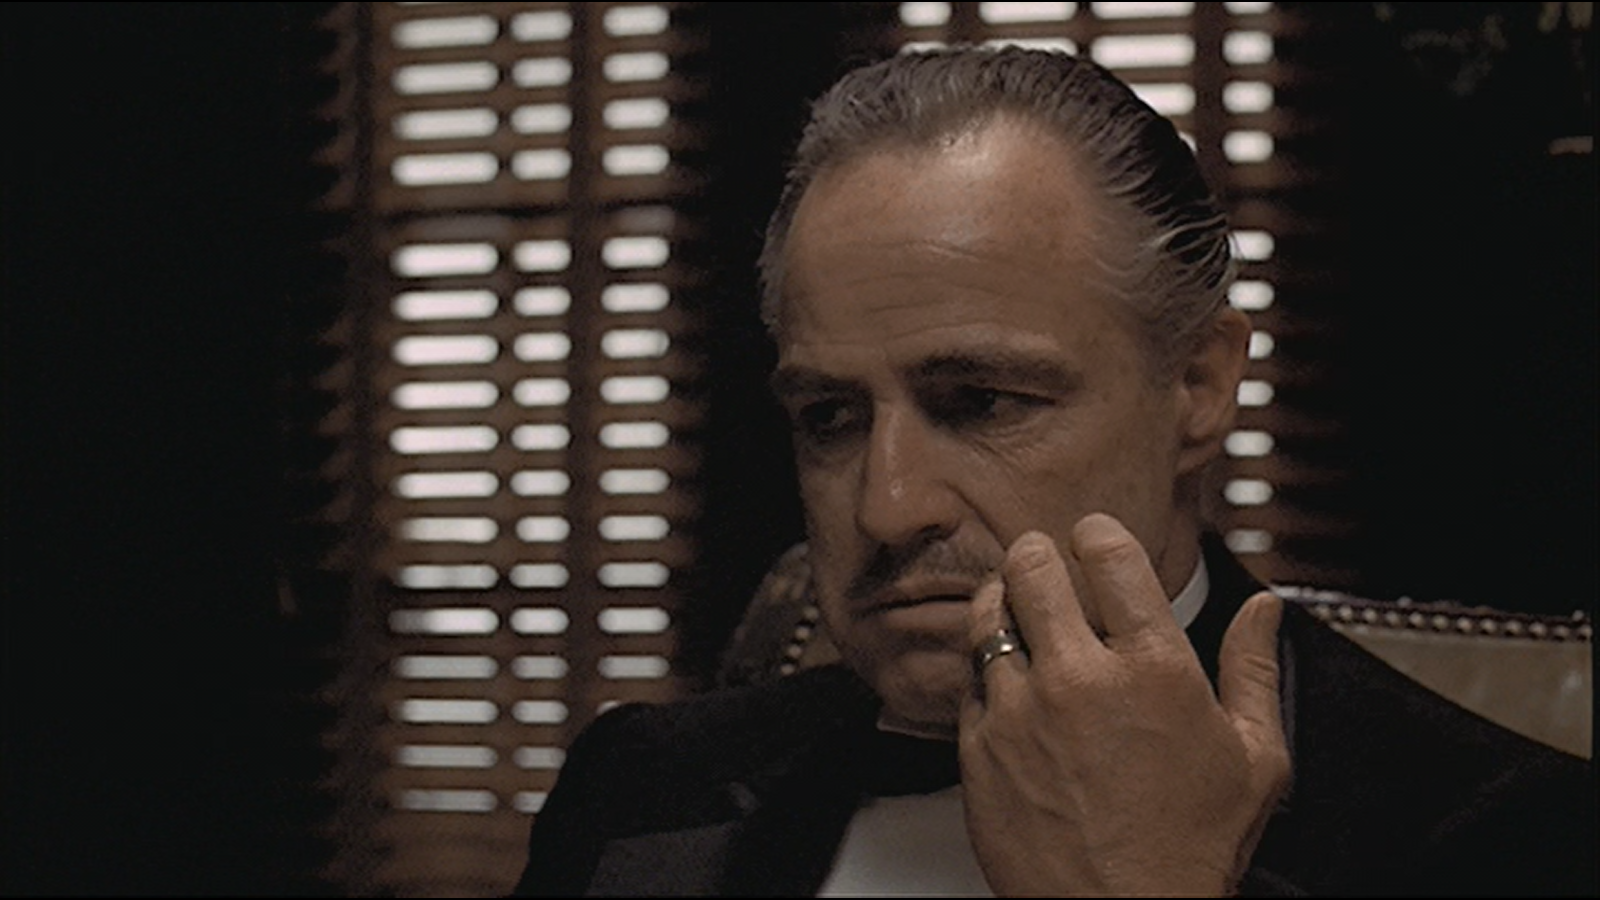 The Godfather - Amanda is joined by Karen to discuss the classic, The Godfather. Karen loves the film but wishes it had some strong female characters and Amanda attempts a Brando impression.